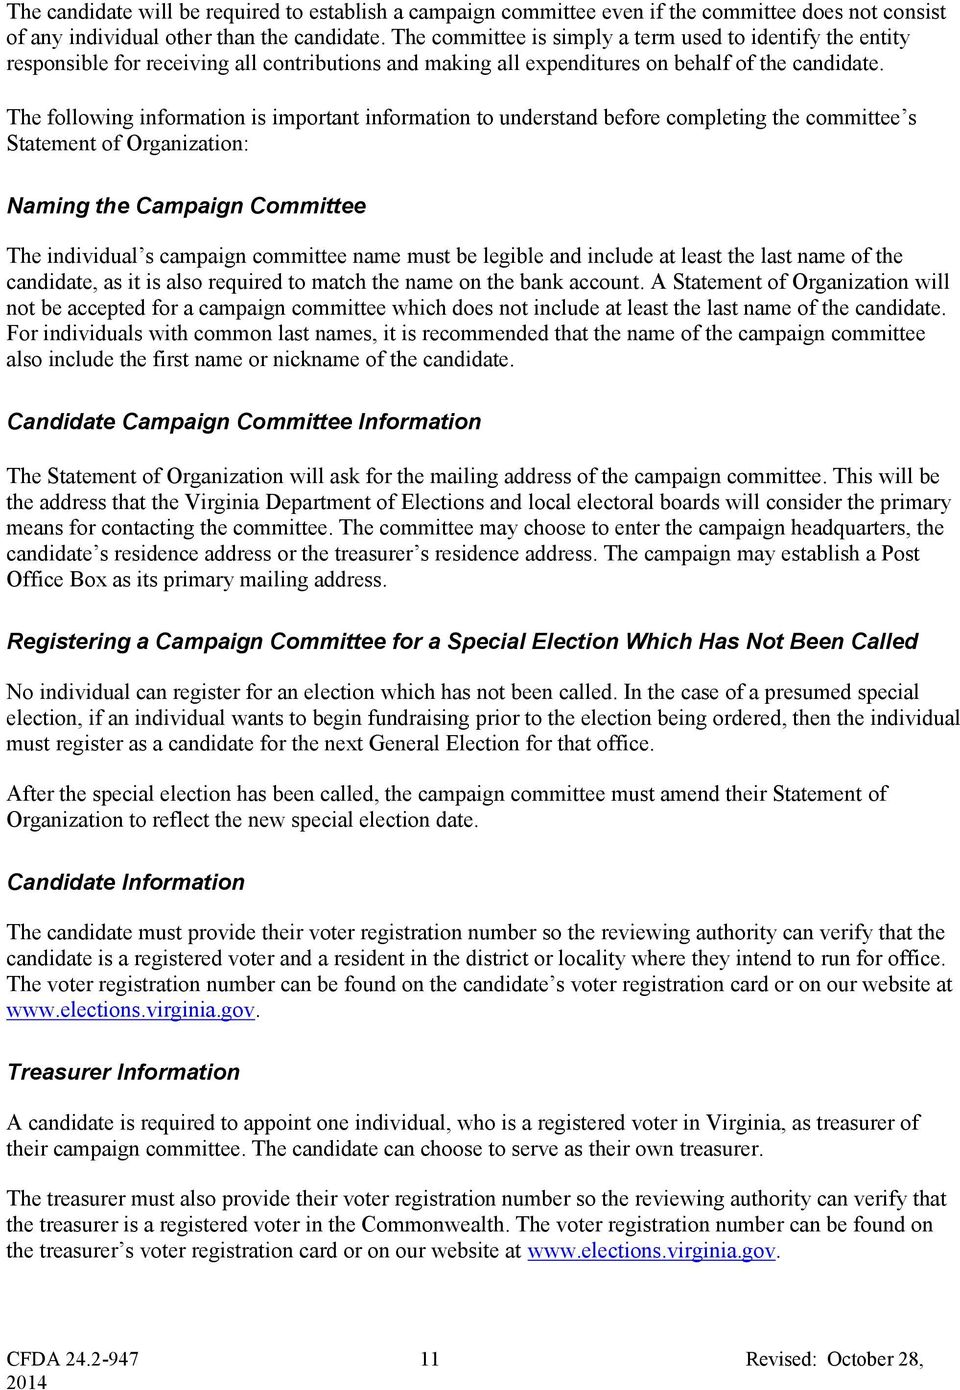 The following information is important information to understand before completing the committee s Statement of Organization: Naming the Campaign Committee The individual s campaign committee name